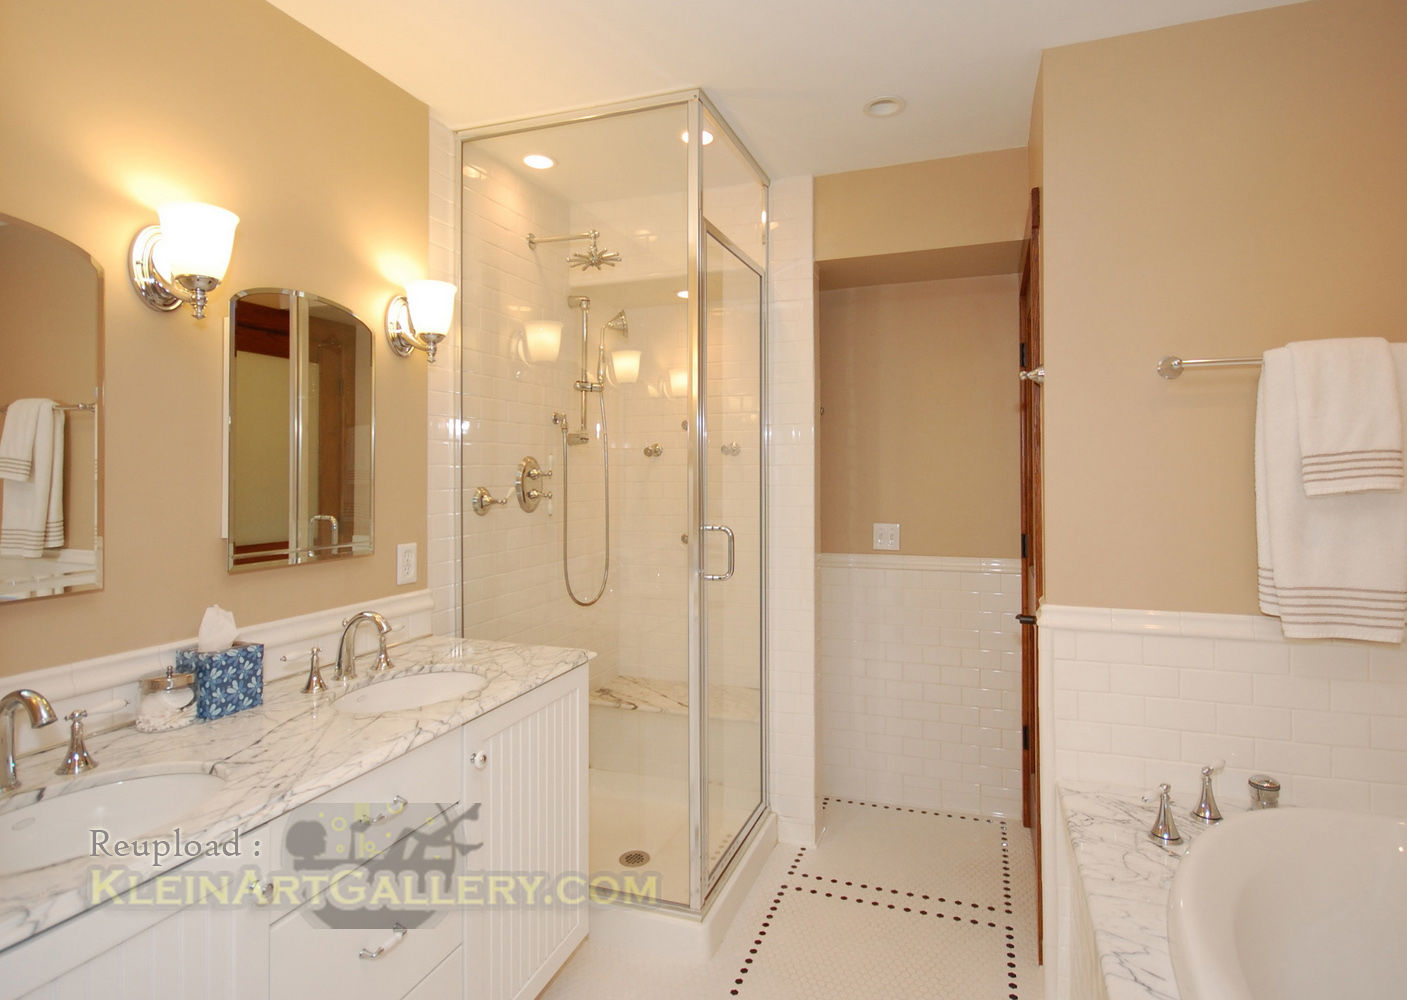 best master bathroom decorating ideas picture-Luxury Master Bathroom Decorating Ideas Construction